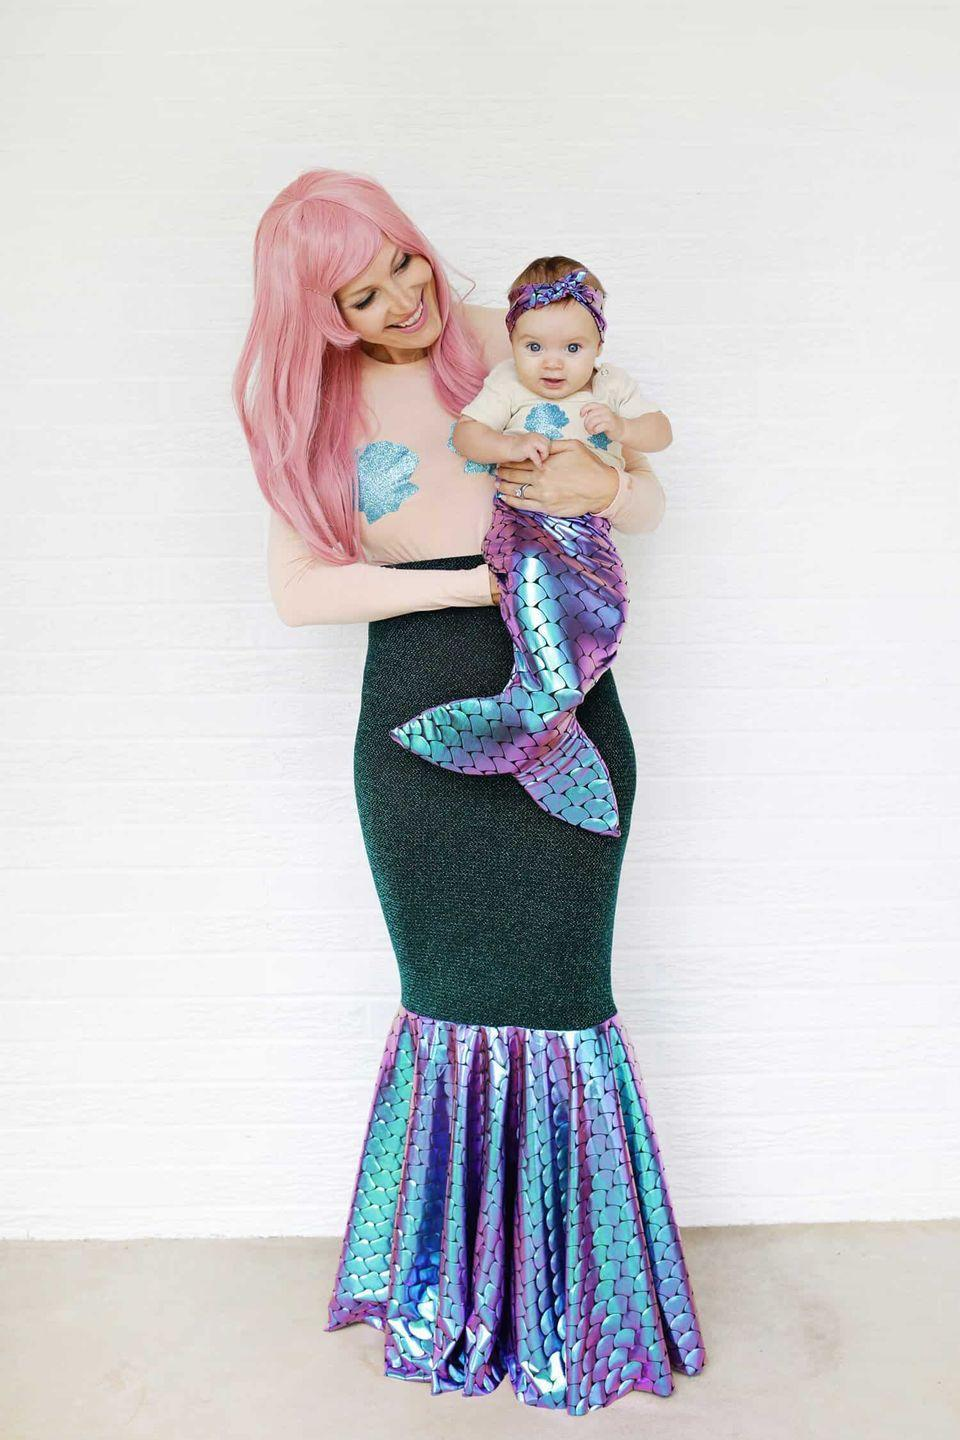 """<p> You and your little one will get along swimmingly as gorgeous sea creatures, matching mermaid tails and all. </p><p><strong>Get the tutorial at <a href=""""https://abeautifulmess.com/2017/10/mother-daughter-mermaid-costume-diy.html"""" rel=""""nofollow noopener"""" target=""""_blank"""" data-ylk=""""slk:A Beautiful Mess"""" class=""""link rapid-noclick-resp"""">A Beautiful Mess</a>.</strong></p><p><a class=""""link rapid-noclick-resp"""" href=""""https://go.redirectingat.com?id=74968X1596630&url=https%3A%2F%2Fwww.etsy.com%2Flisting%2F384830682%2Fmermaid-scale-fabric-iridecent-color&sref=https%3A%2F%2Fwww.countryliving.com%2Fdiy-crafts%2Fg28181767%2Fmom-halloween-costumes%2F"""" rel=""""nofollow noopener"""" target=""""_blank"""" data-ylk=""""slk:SHOP MERMAID SCALE FABRIC"""">SHOP MERMAID SCALE FABRIC</a></p>"""